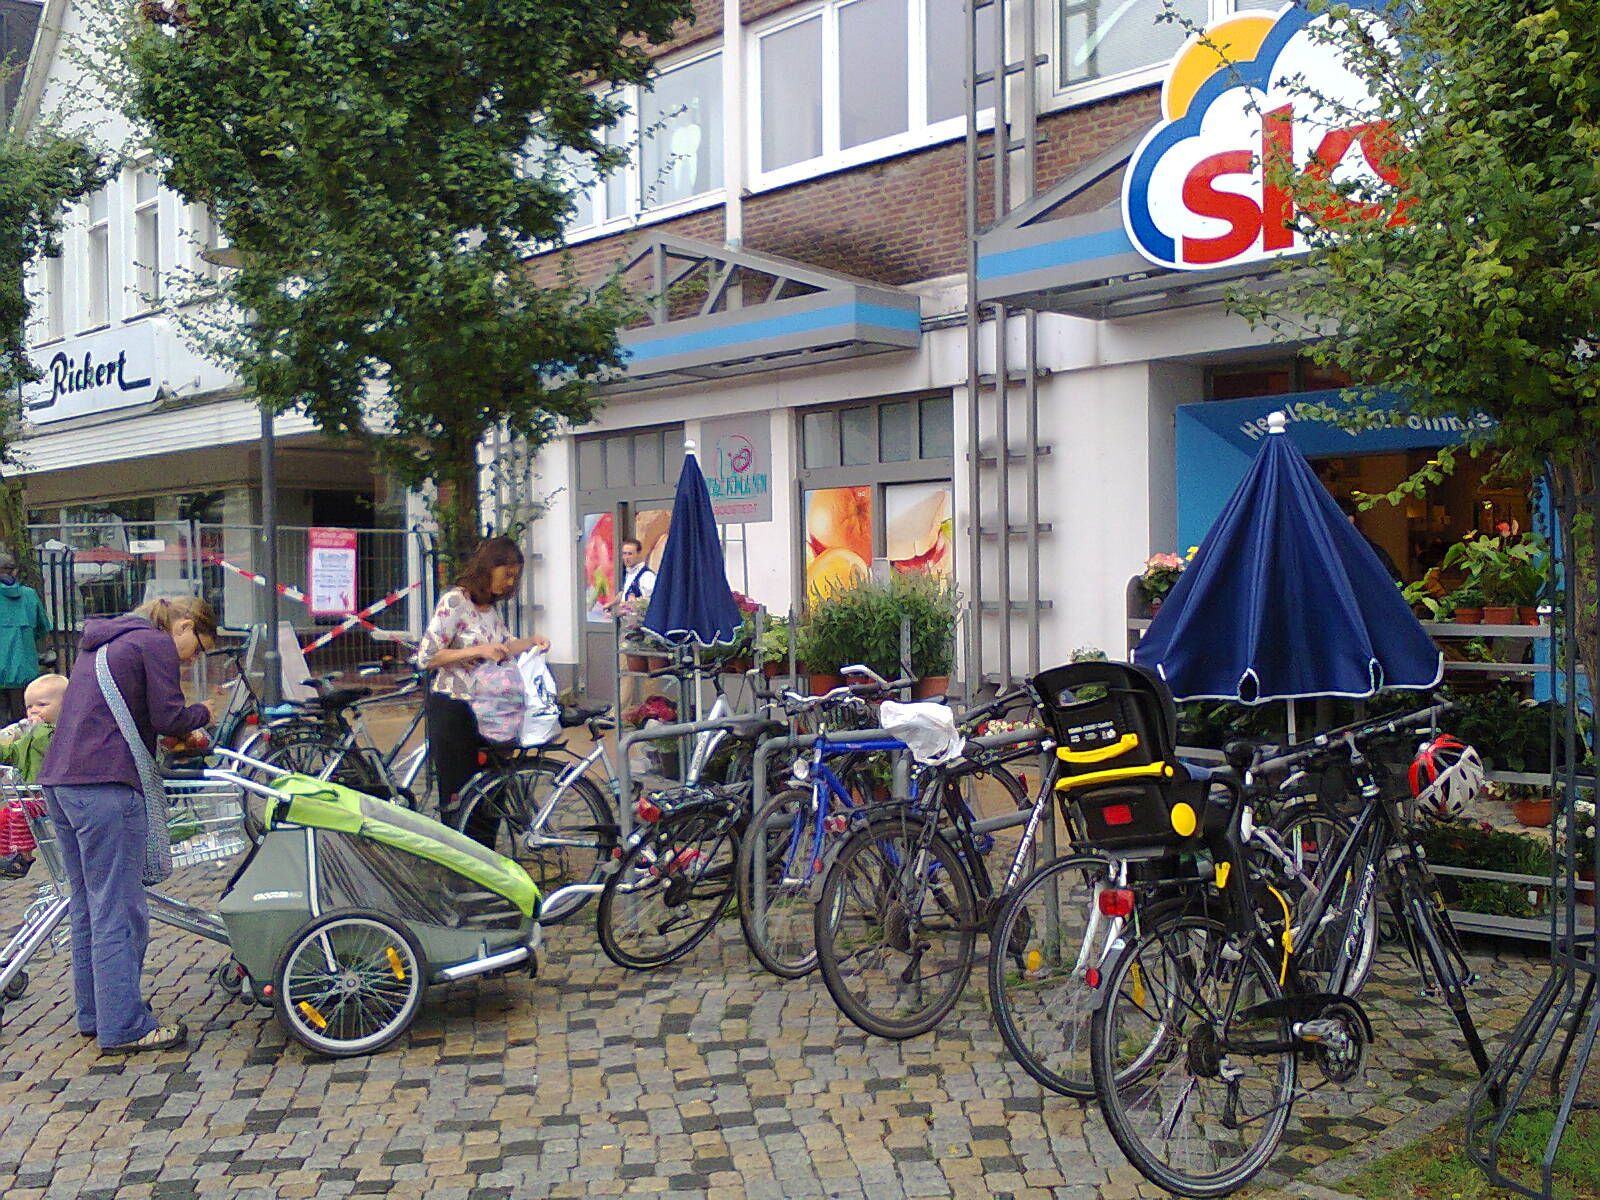 Cycle parking outside a small supermarket